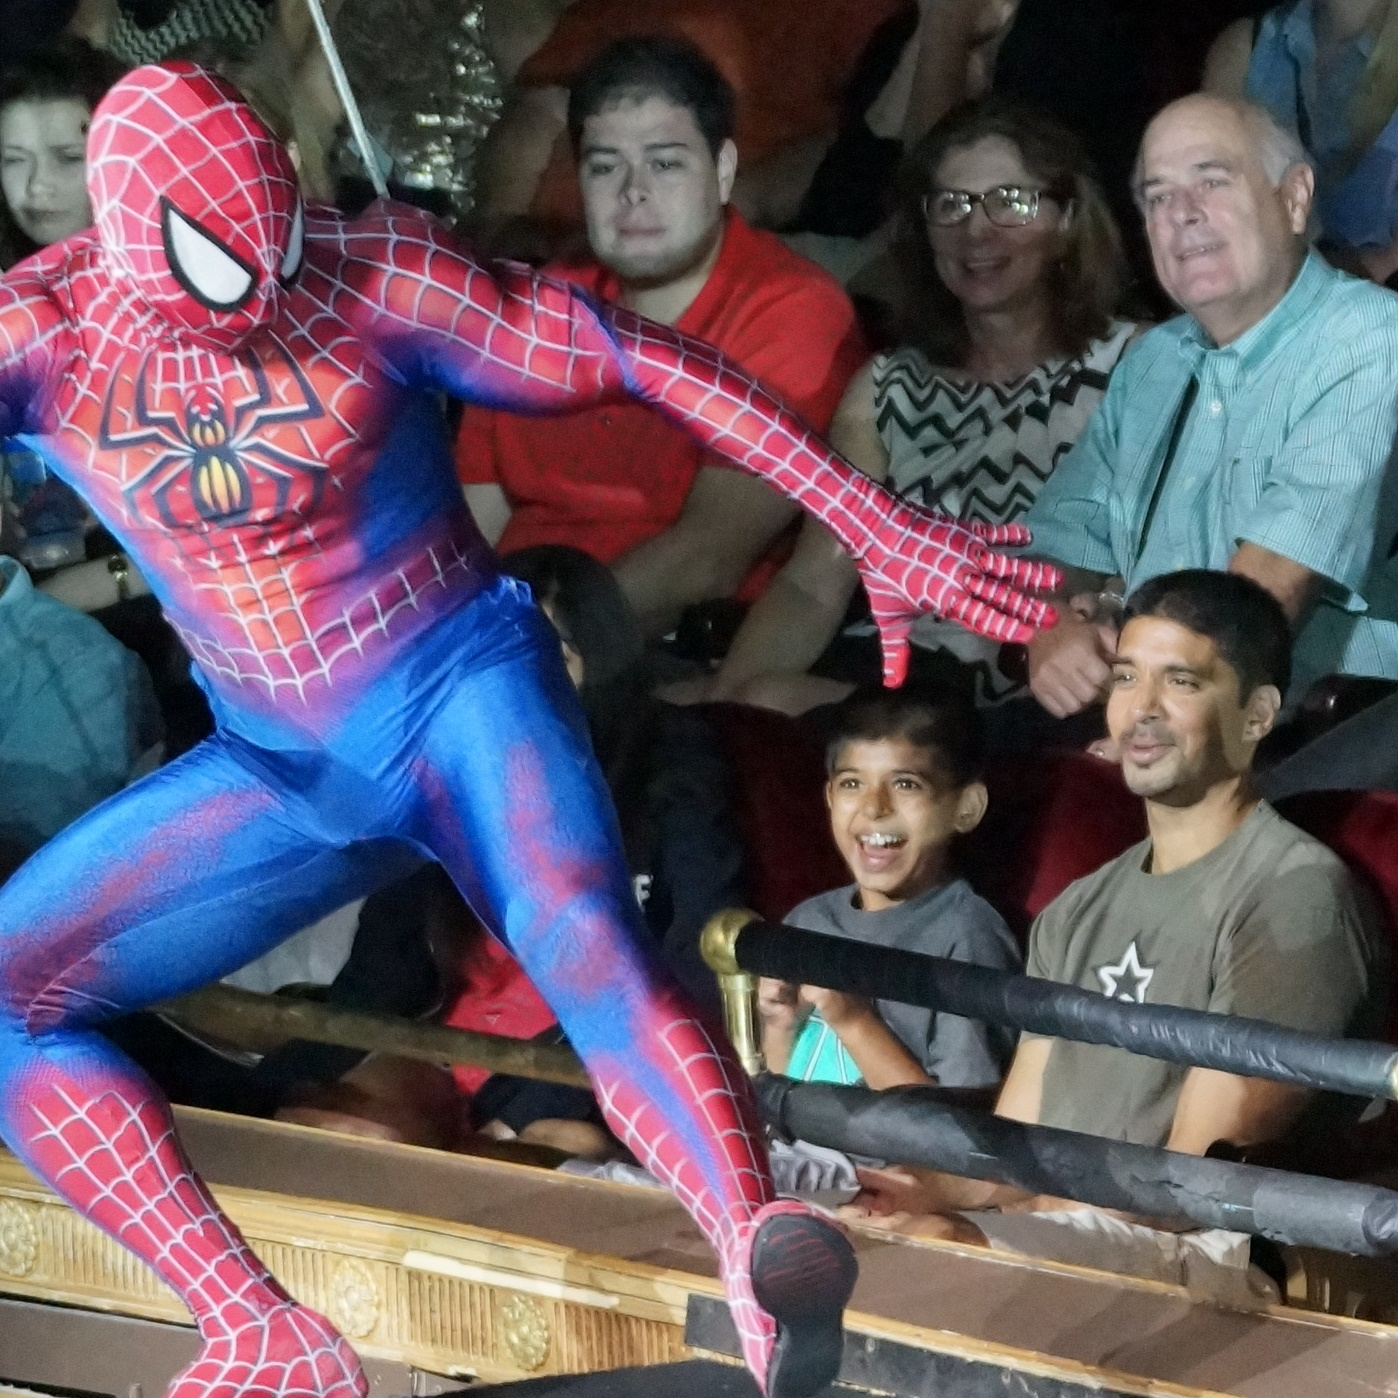 Father's Day Gift Idea: Tickets to Spider-Man on Broadway (NYC) Super Hero Dads Go Free for Father's Day